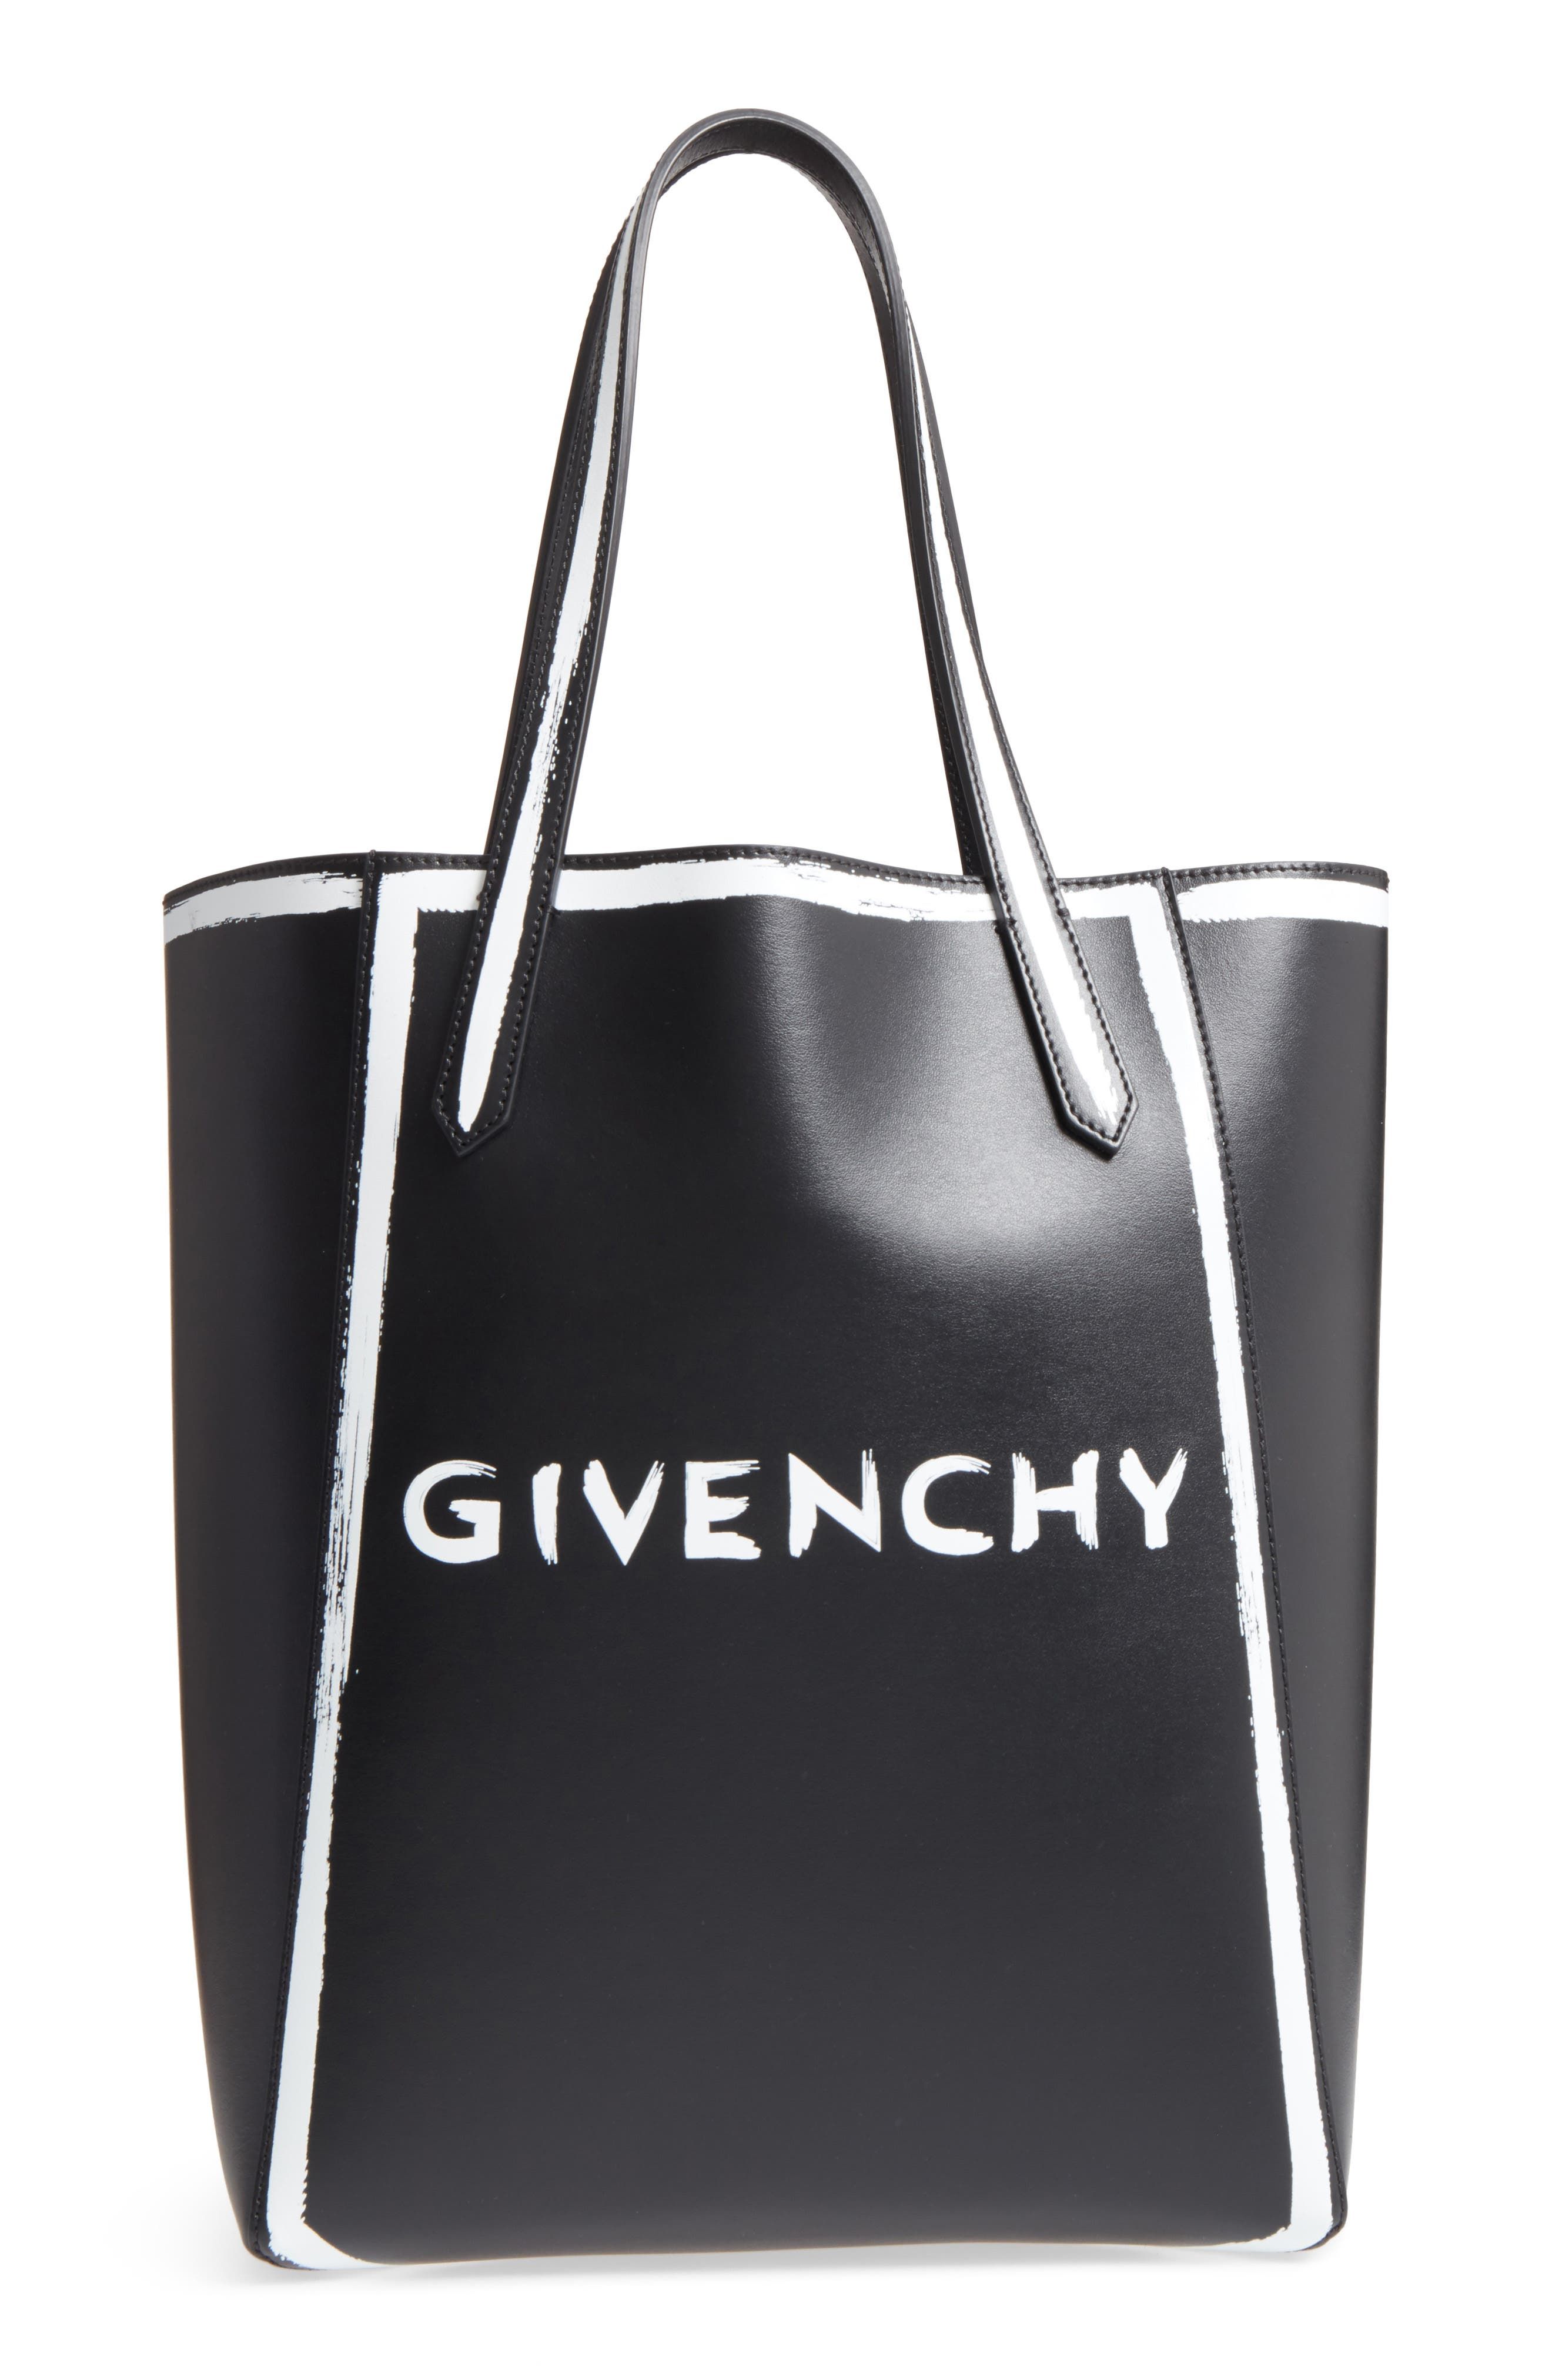 Givenchy Stargate Graffiti Calfskin Leather Tote